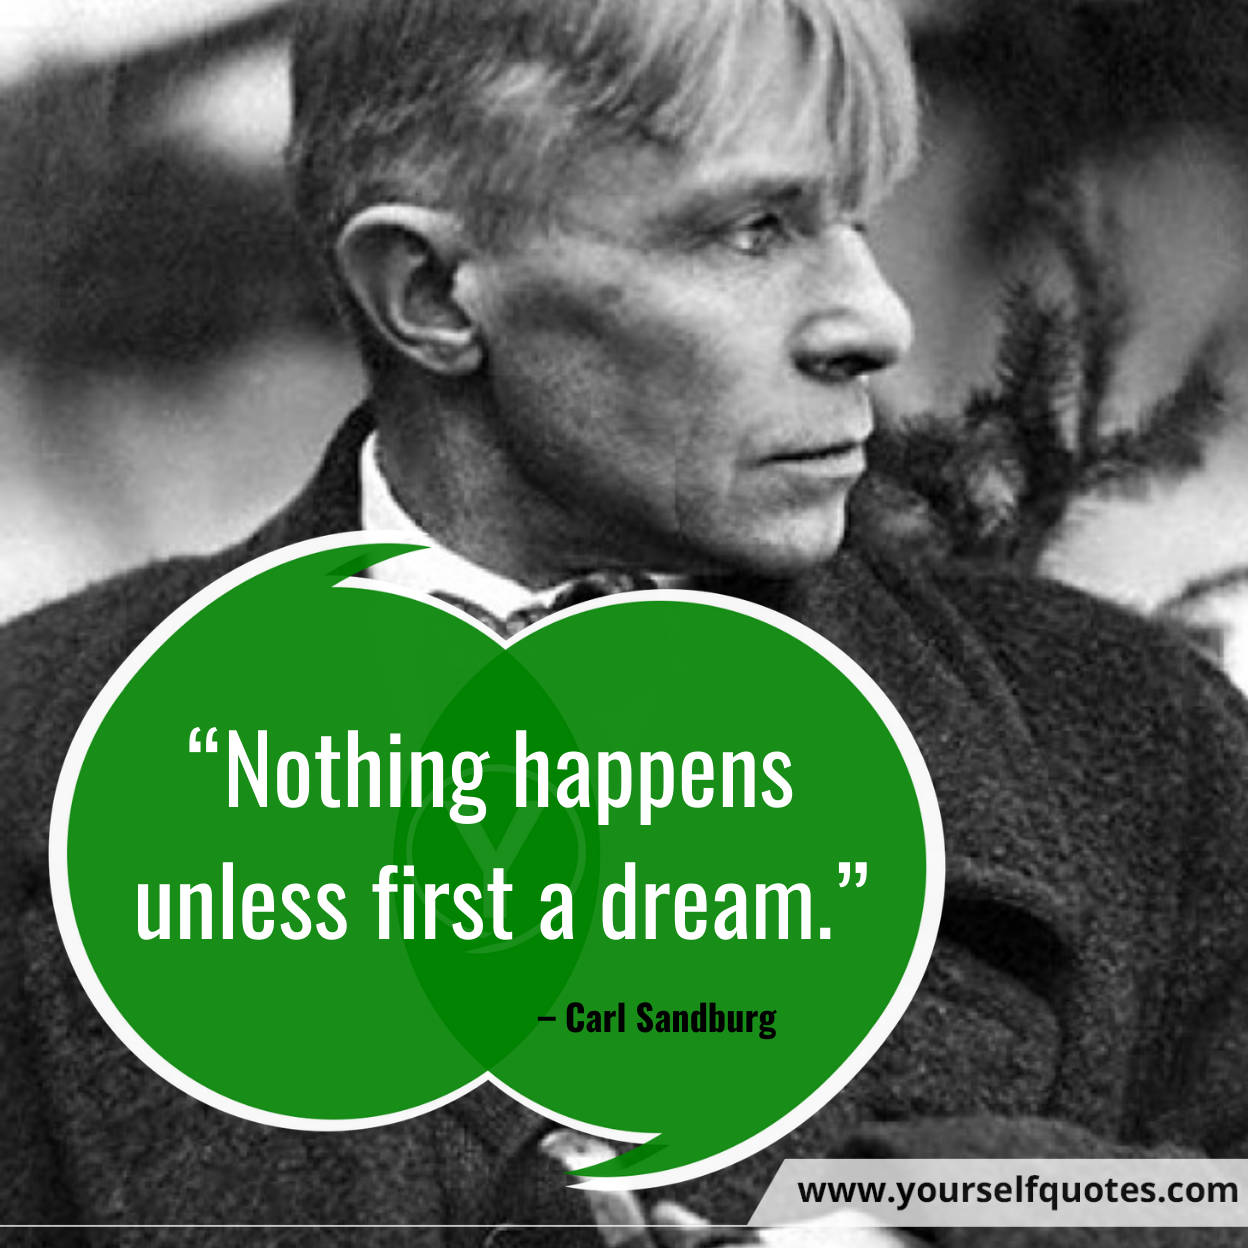 Quotes on Dream by Carl Sandburg